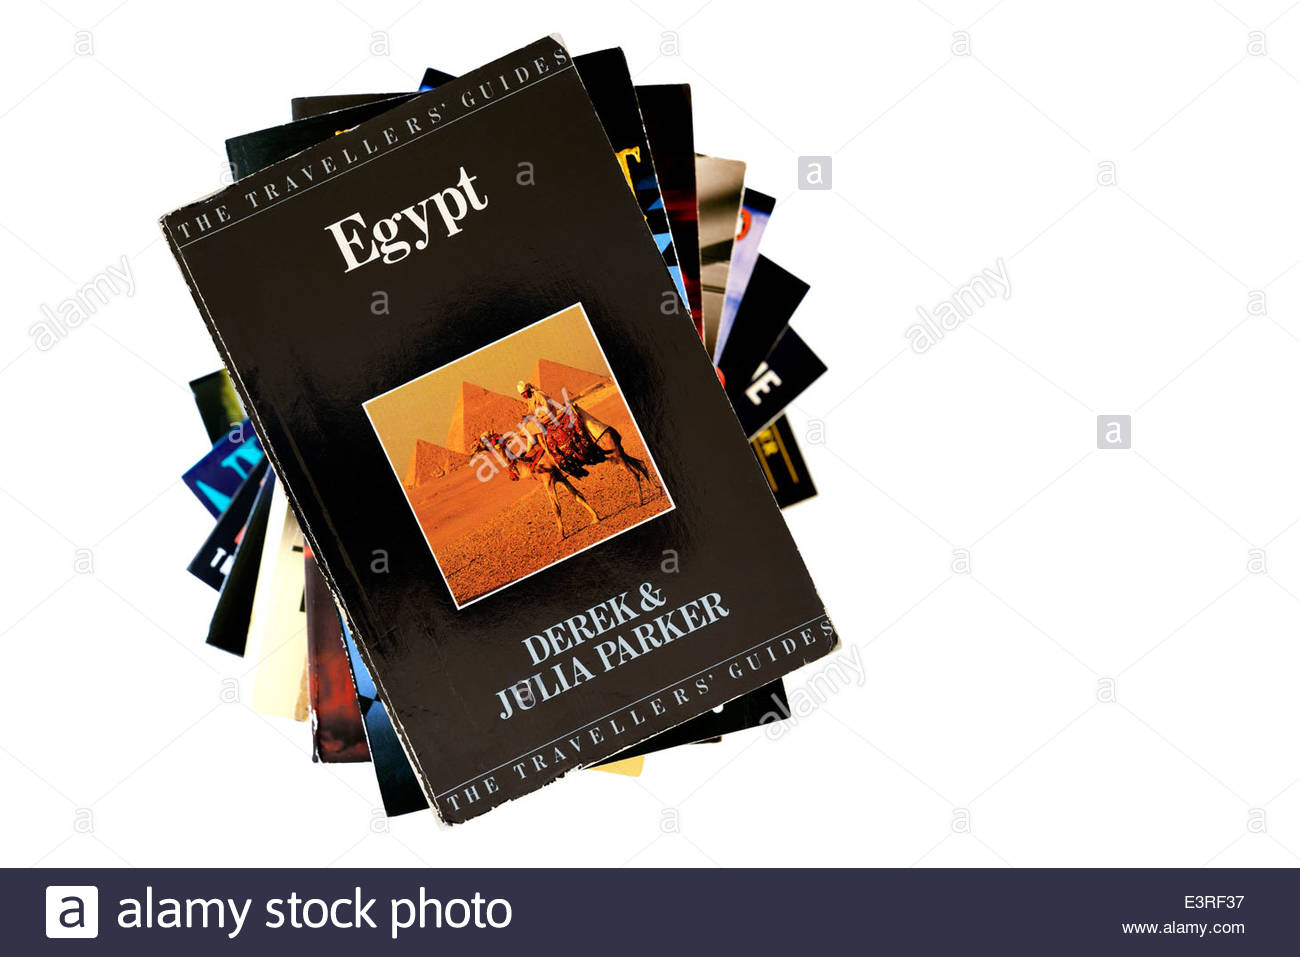 Old travel guide to Egypt, book title, stacked used books, England - Stock Image